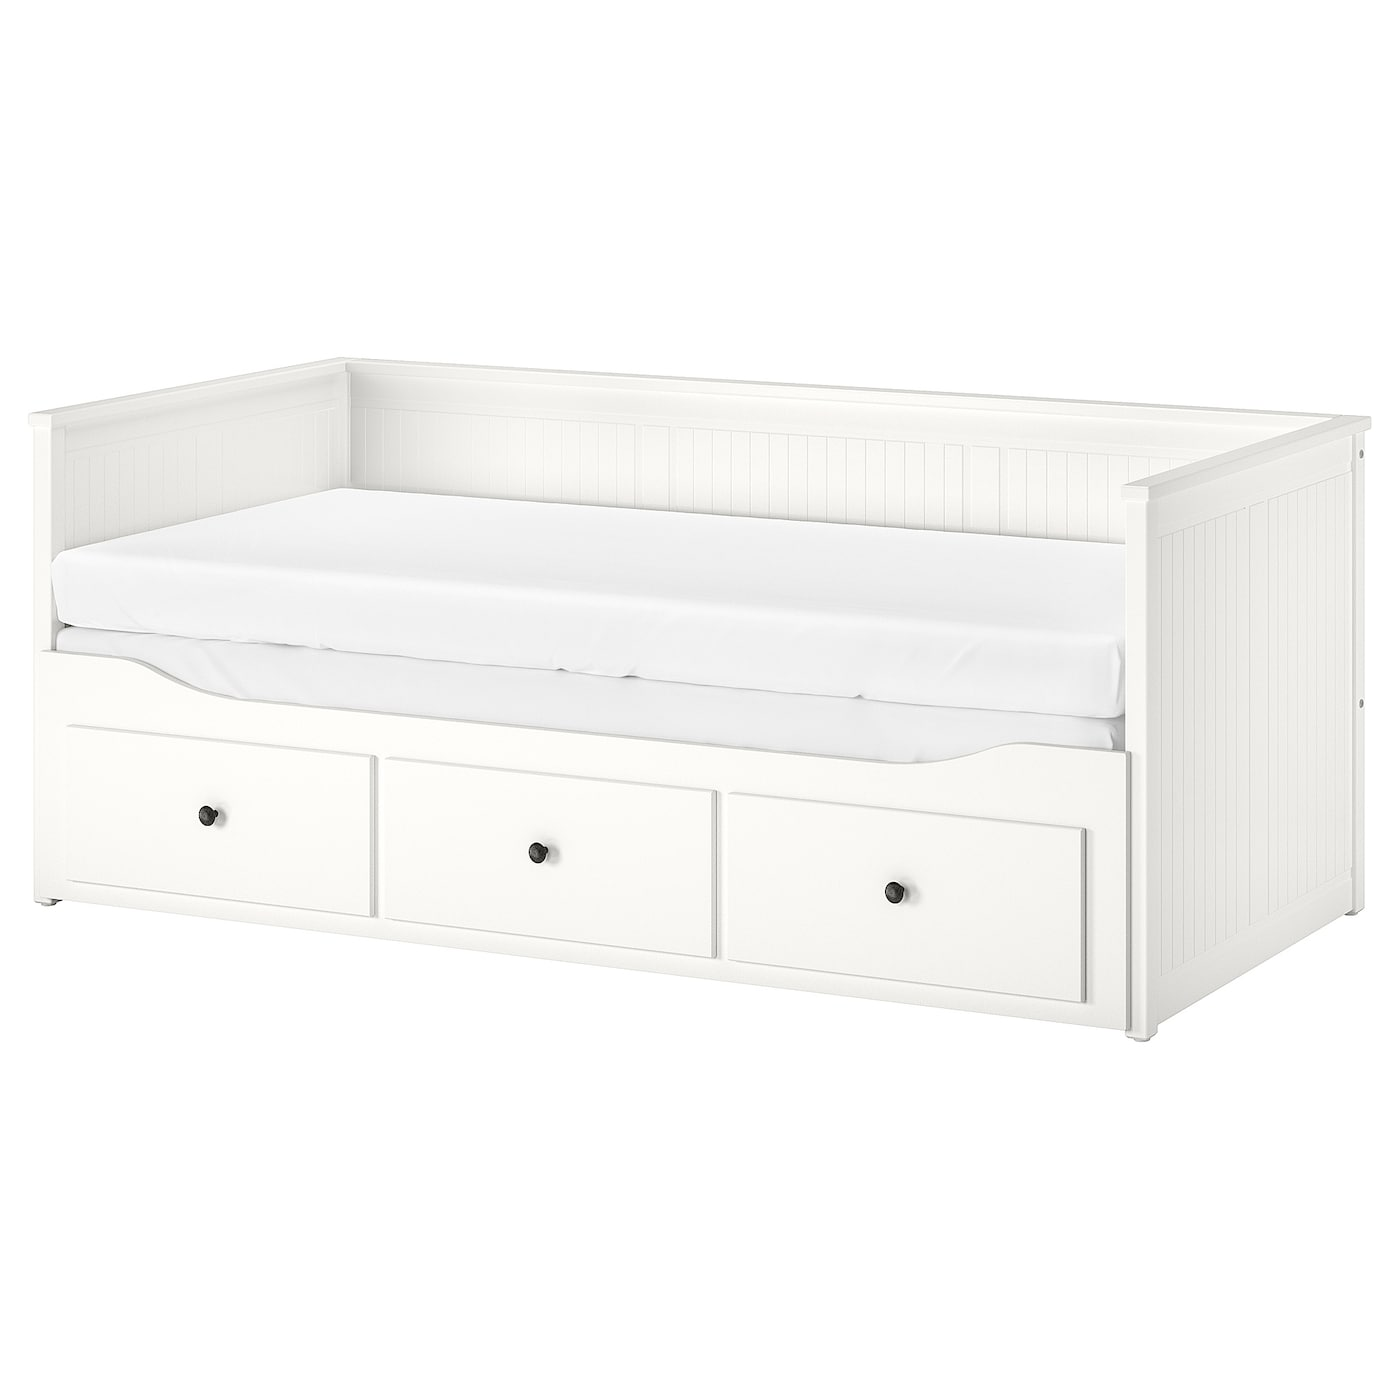 Hemnes Day Bed W 3 Drawers 2 Mattresses White Minnesund Firm Ikea